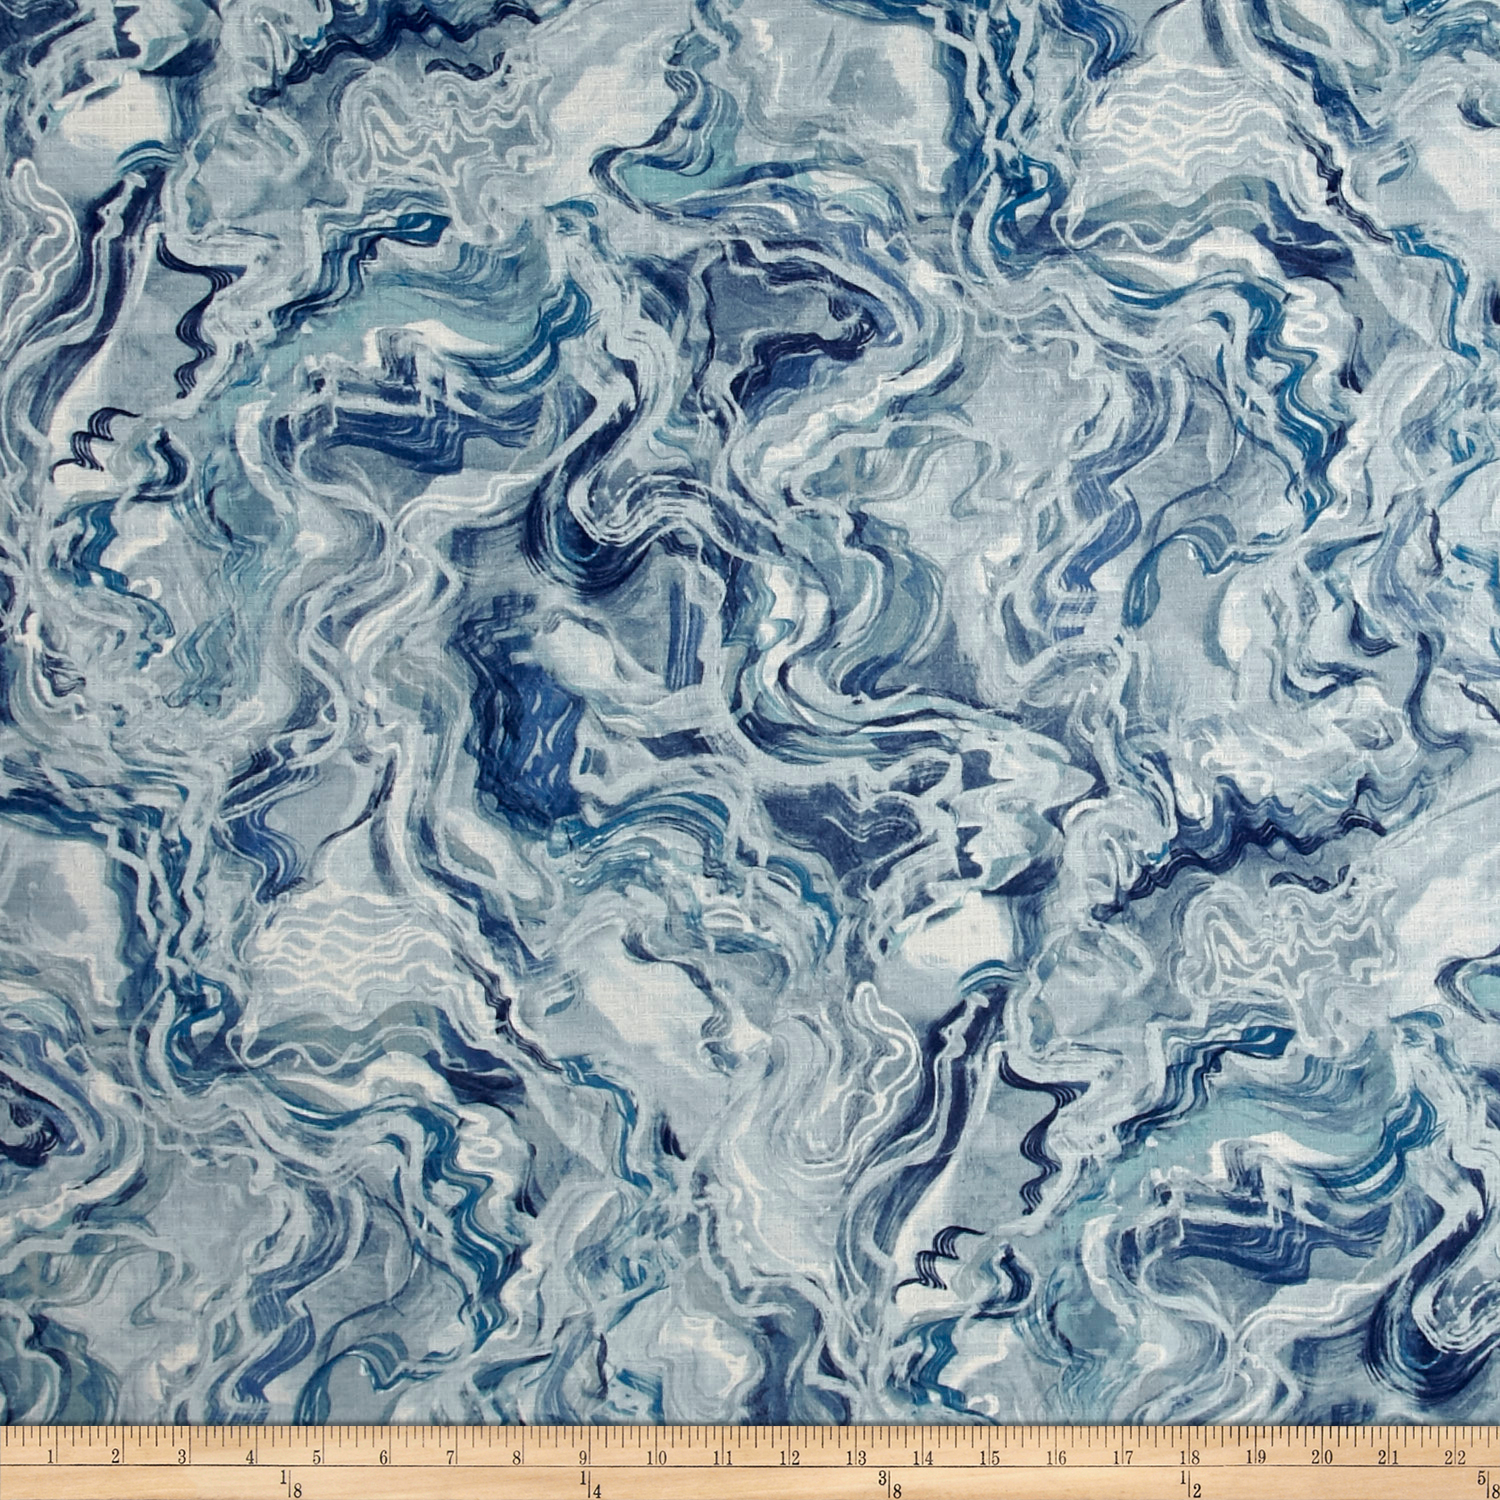 Swavelle/Mill Creek Trapello Ripple Fabric by Swavelle Mill Creek in USA